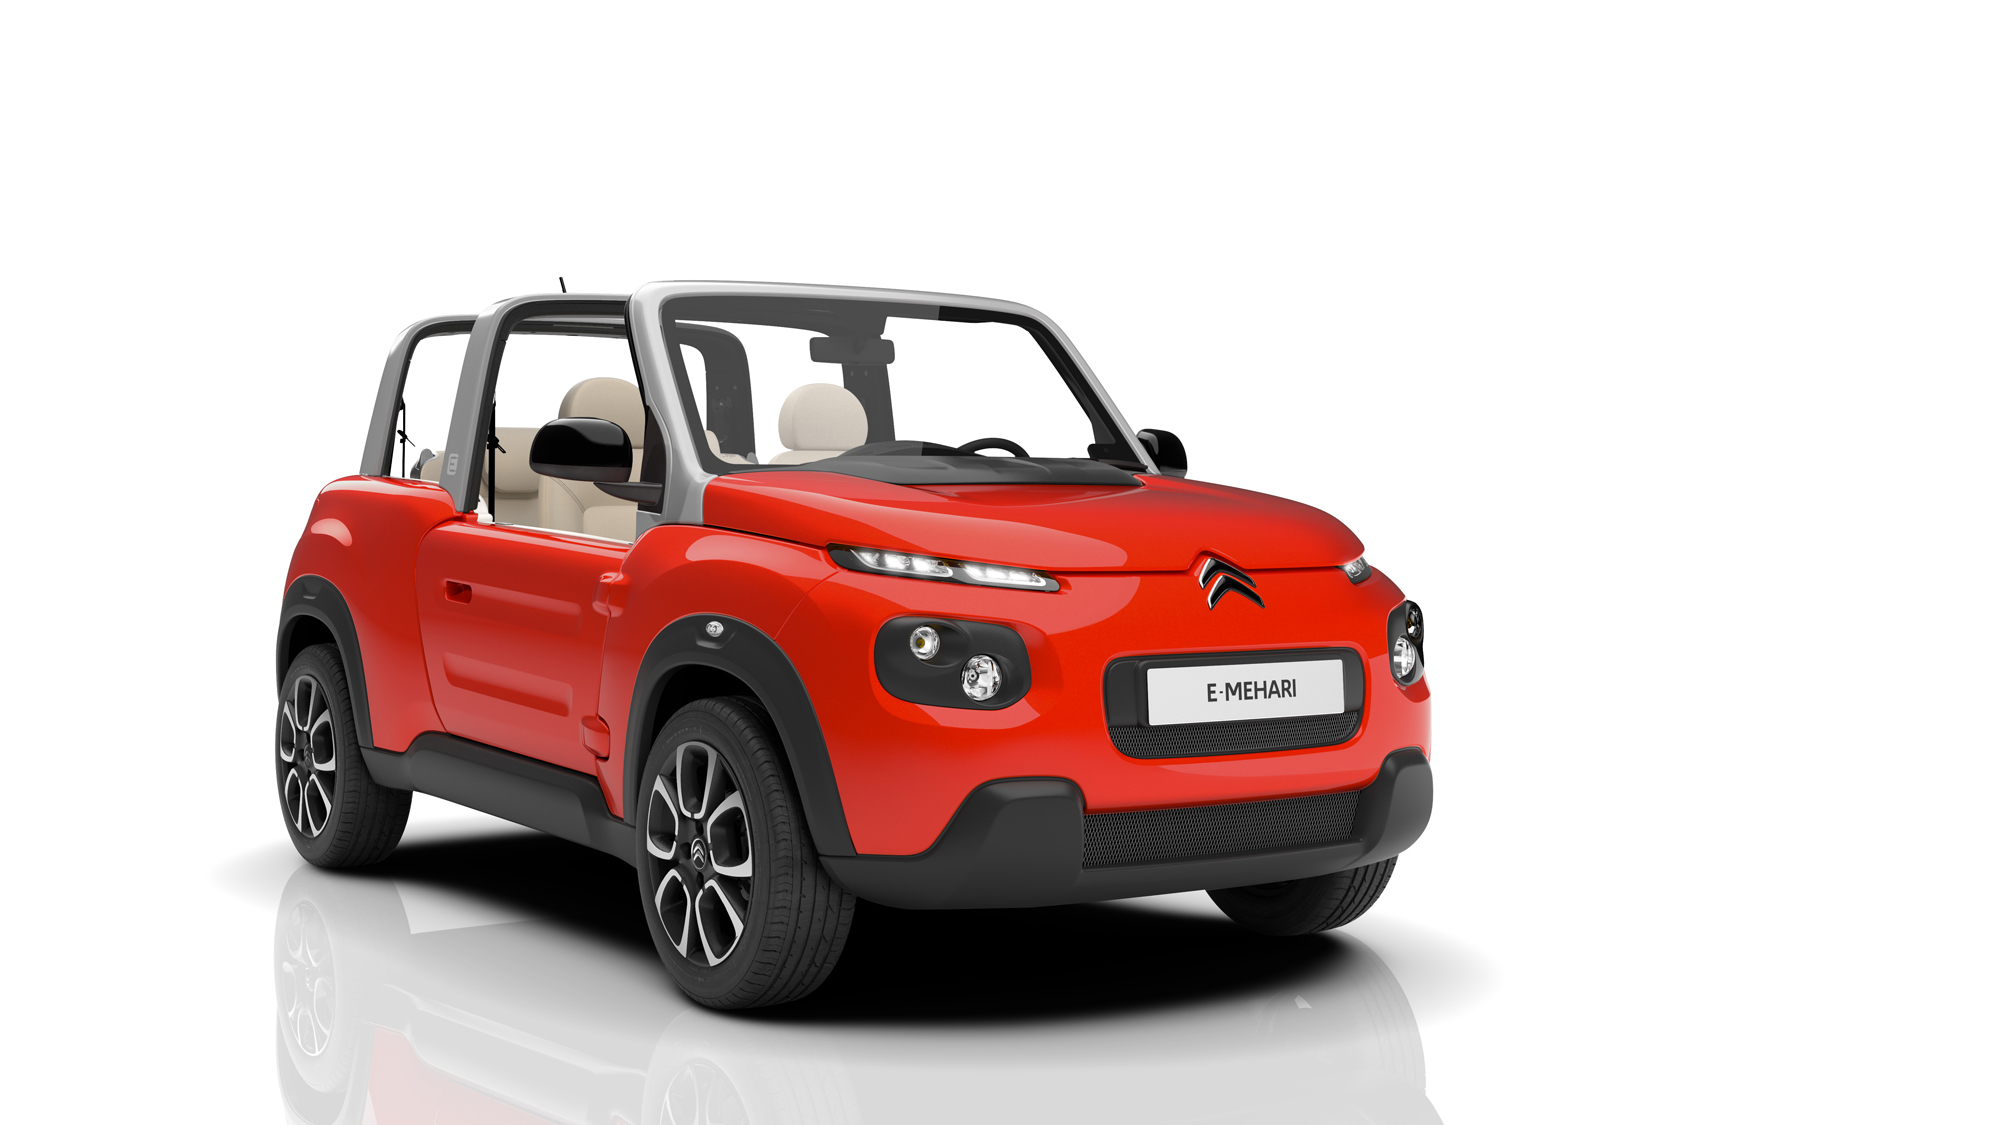 2016 citroen e-mehari cover